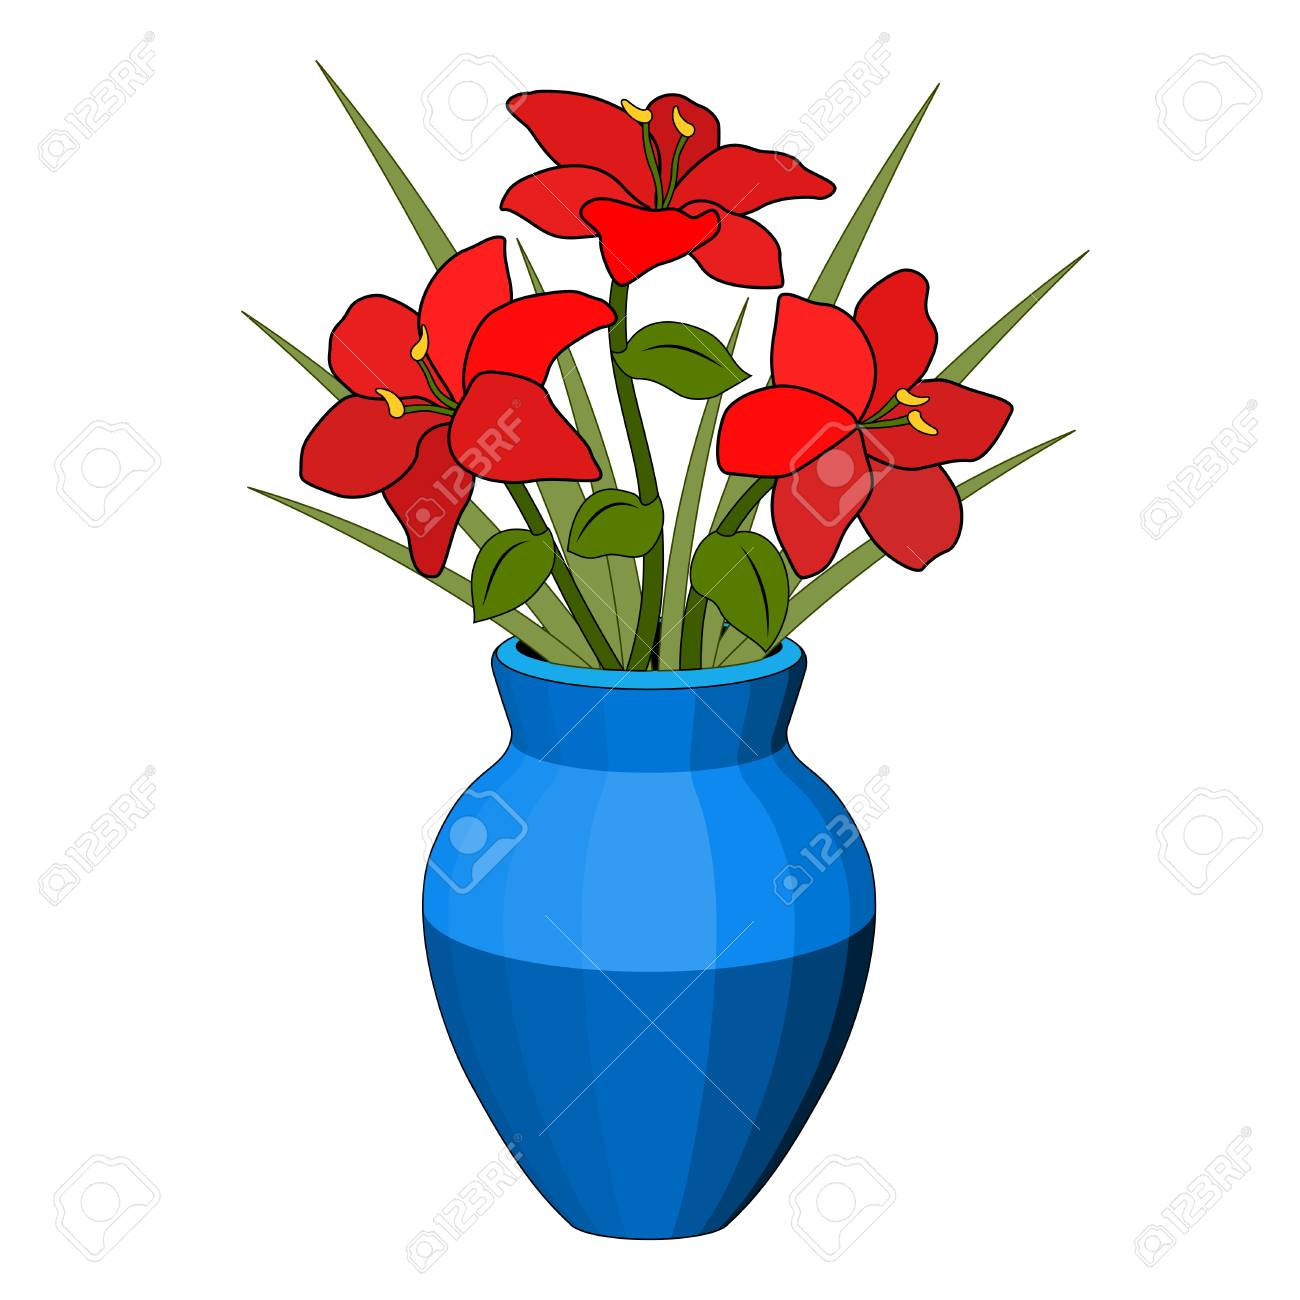 Bouquet In A Vase Of Red Flowers Blue Pot Flower Arrangement